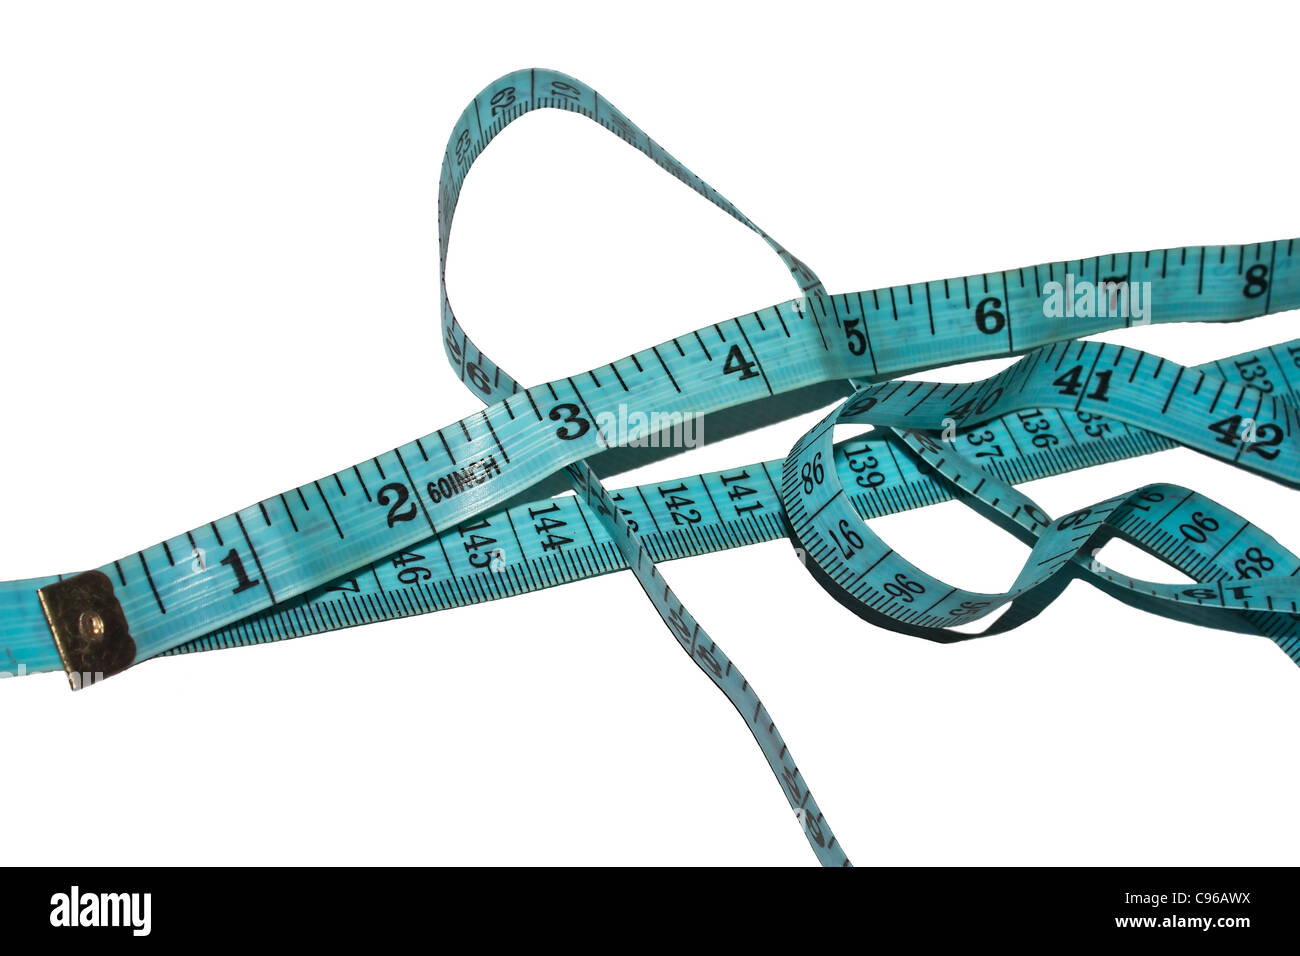 A tailor's measuring tape - Stock Image